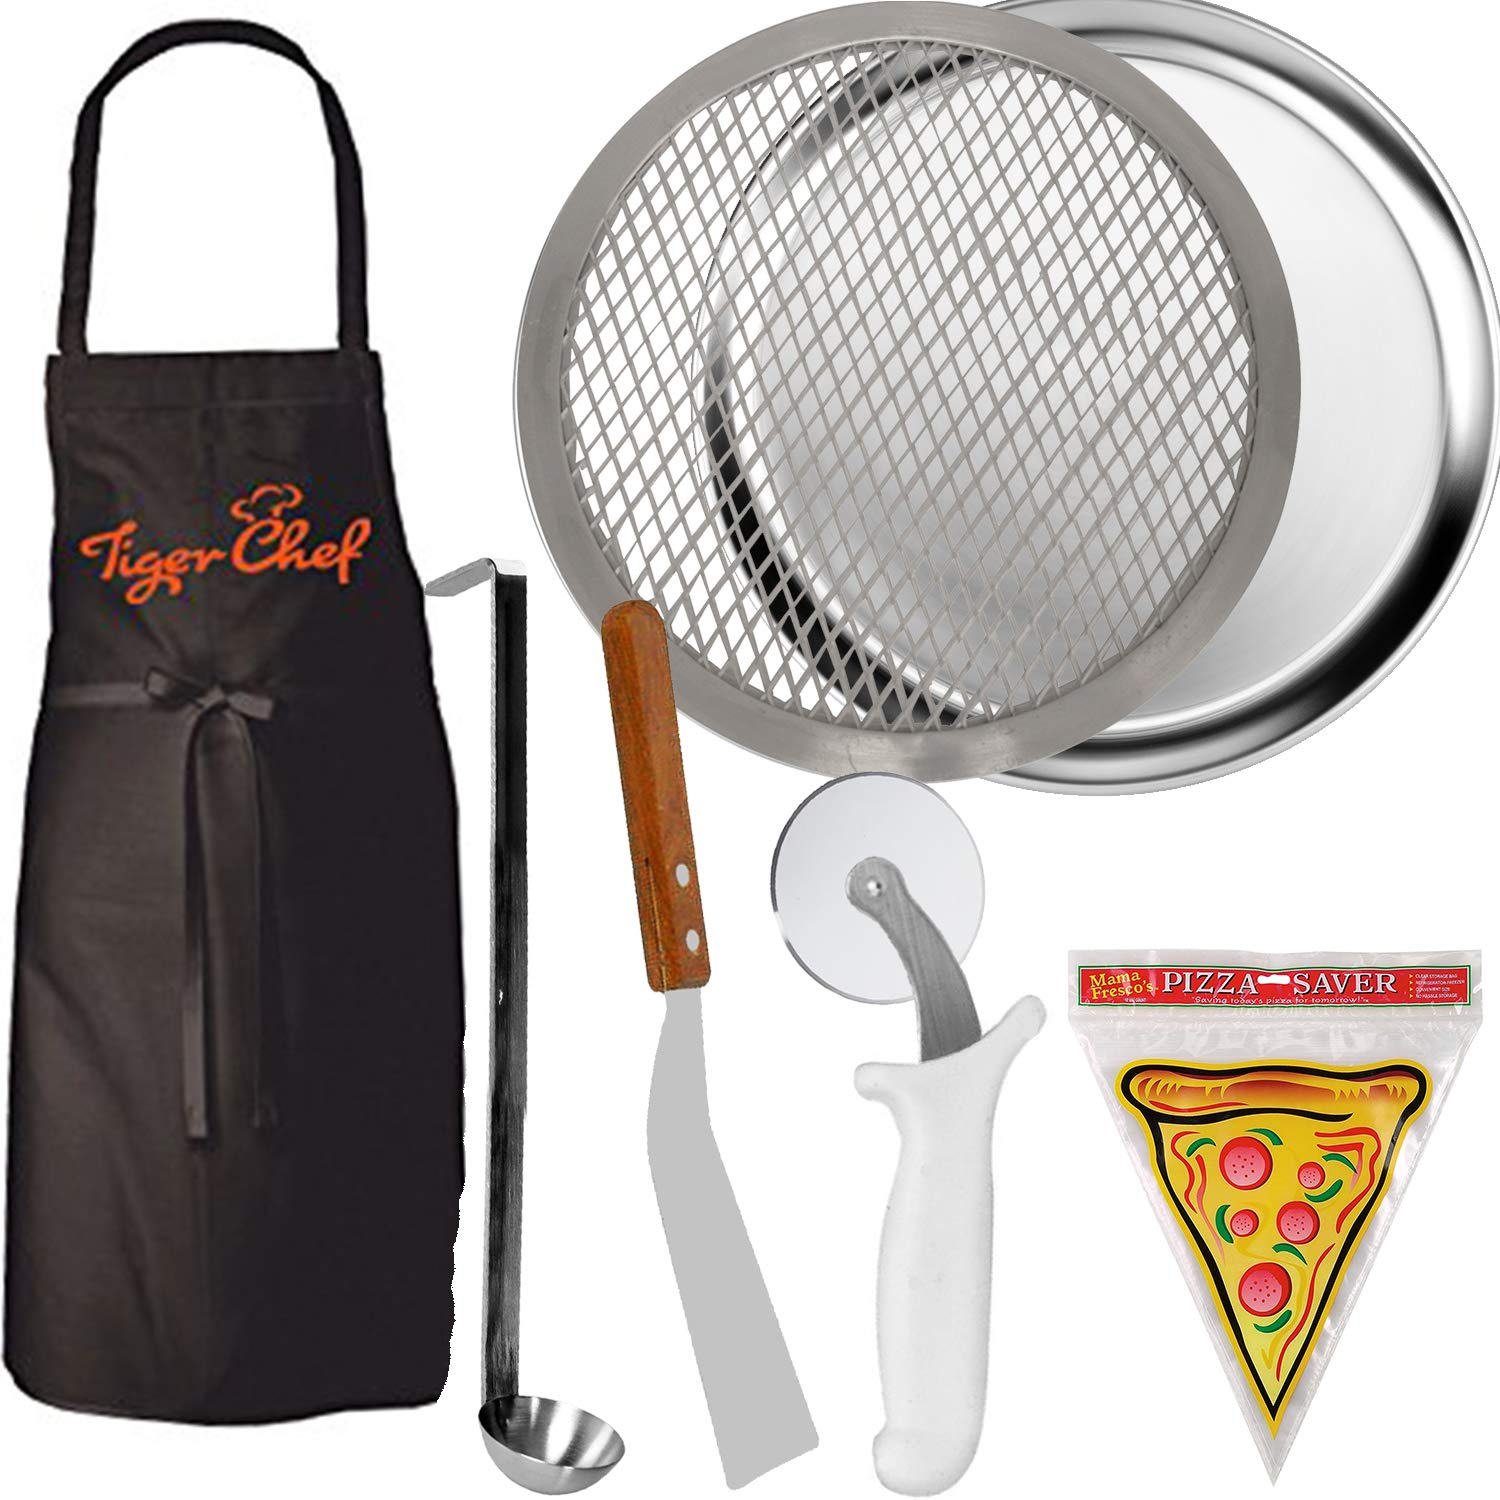 Tiger Chef 16'' Pizza Making Kit. Pizza Pro Set Includes Kitchen Tools to Create Your Own Homemade Pizza. 16'' Pizza Pan, 16'' Pizza Screen, Pizza Wheel, Server, Ladle, Apron & 12 Pizza Saver Bags by Tiger Chef